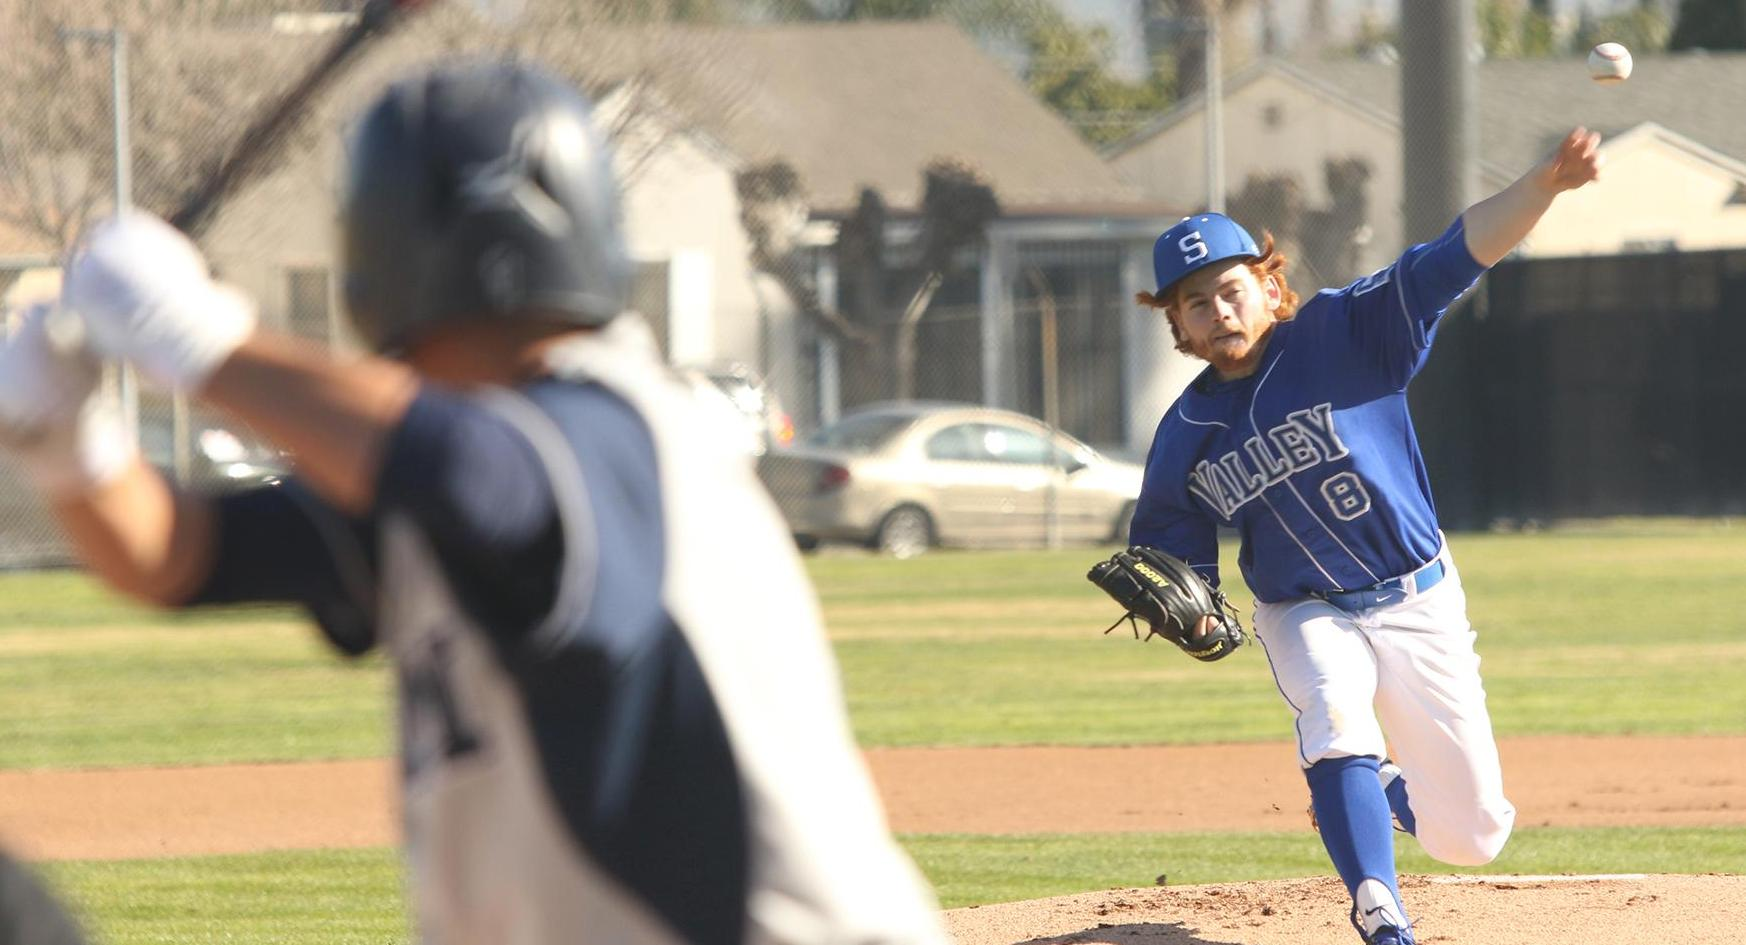 SBVC Baseball comes back to tie, as game is called versus Owls, 5-5